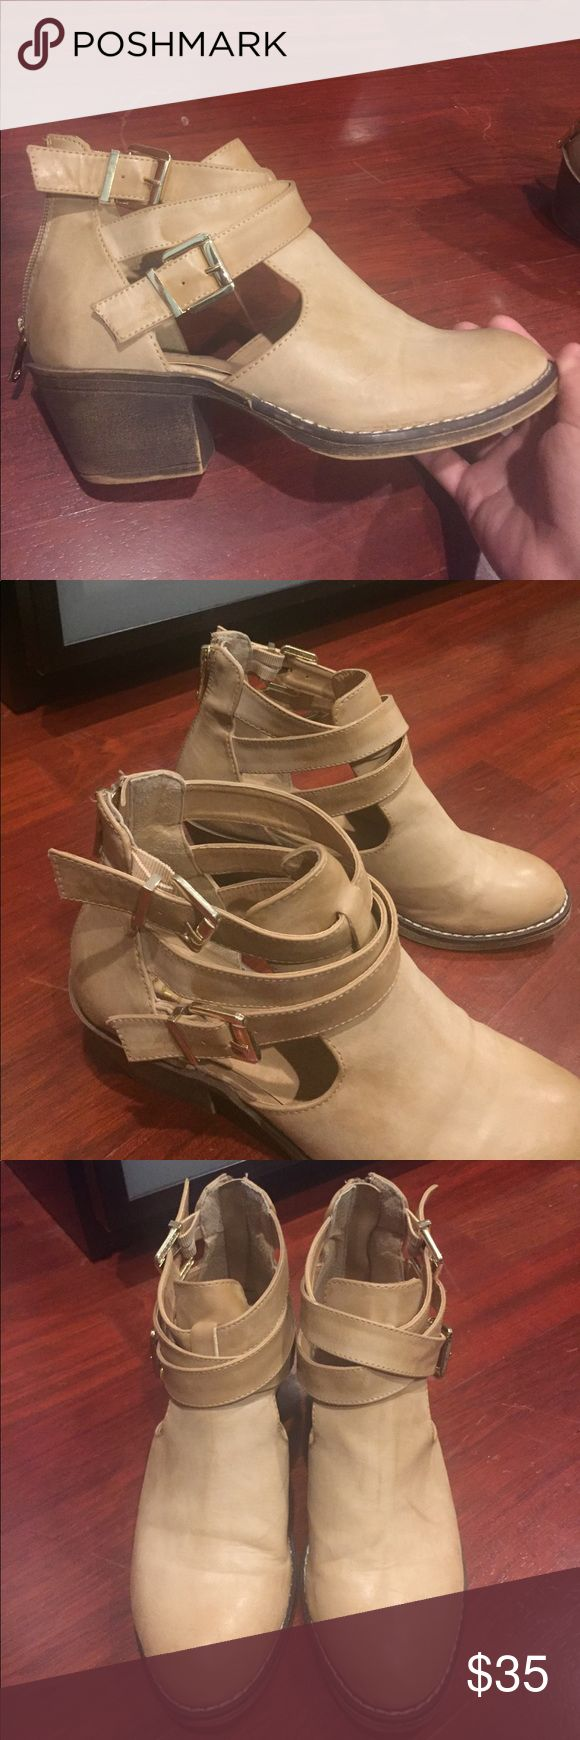 REPORT ANKLE BOOTIES These tan ankle booties are so perfect for spring and summer. There are cutouts and gold buckles on the side. About a 2 inch heel, comfortable to walk in. Zipper back. In great condition! Report Shoes Ankle Boots & Booties